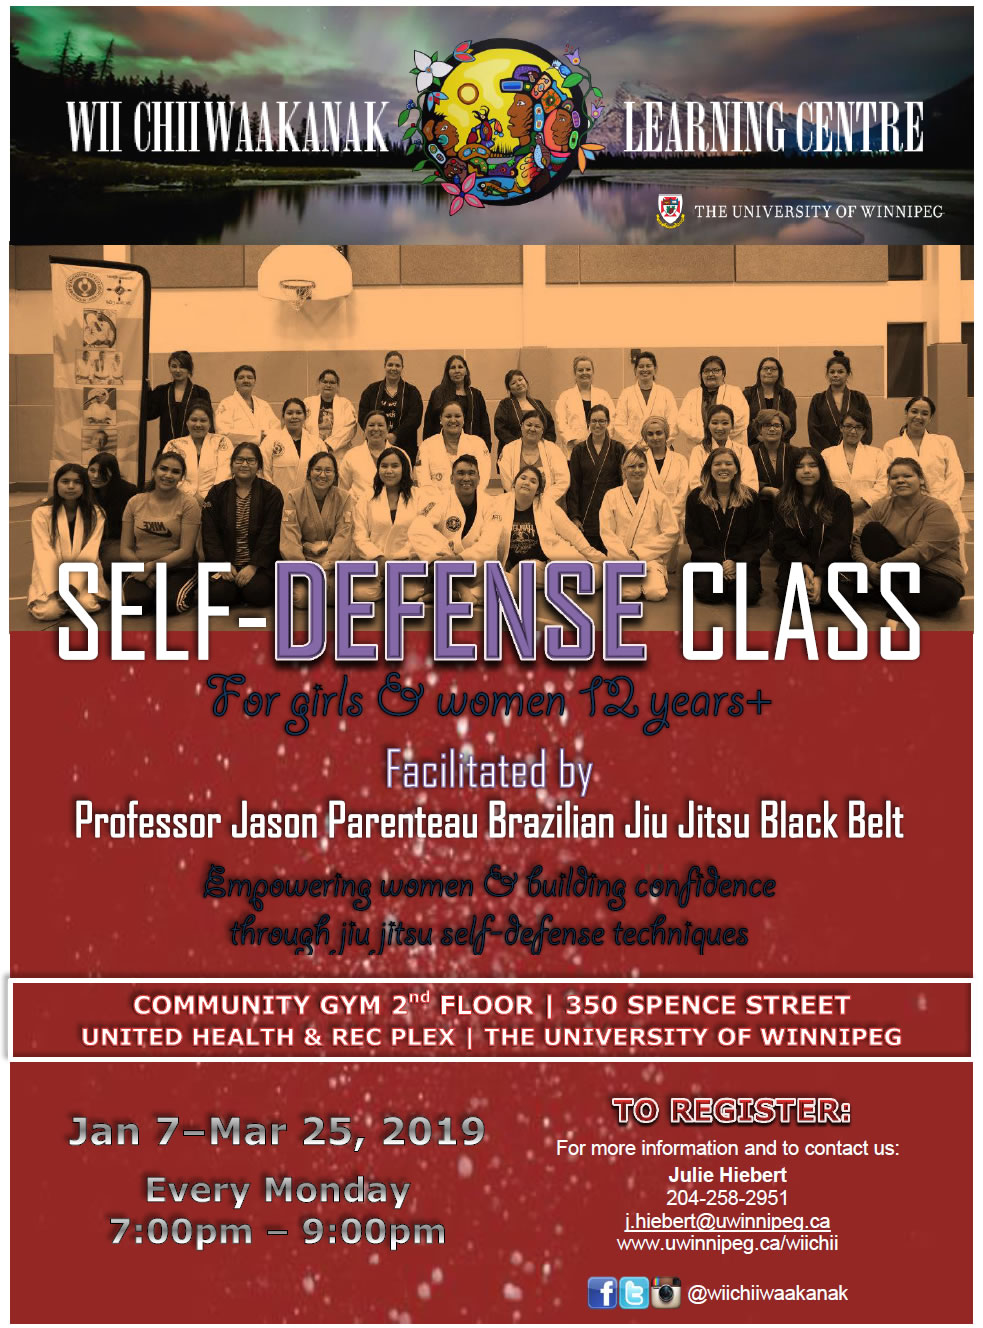 Self-Defense Class for Girls & Women poster